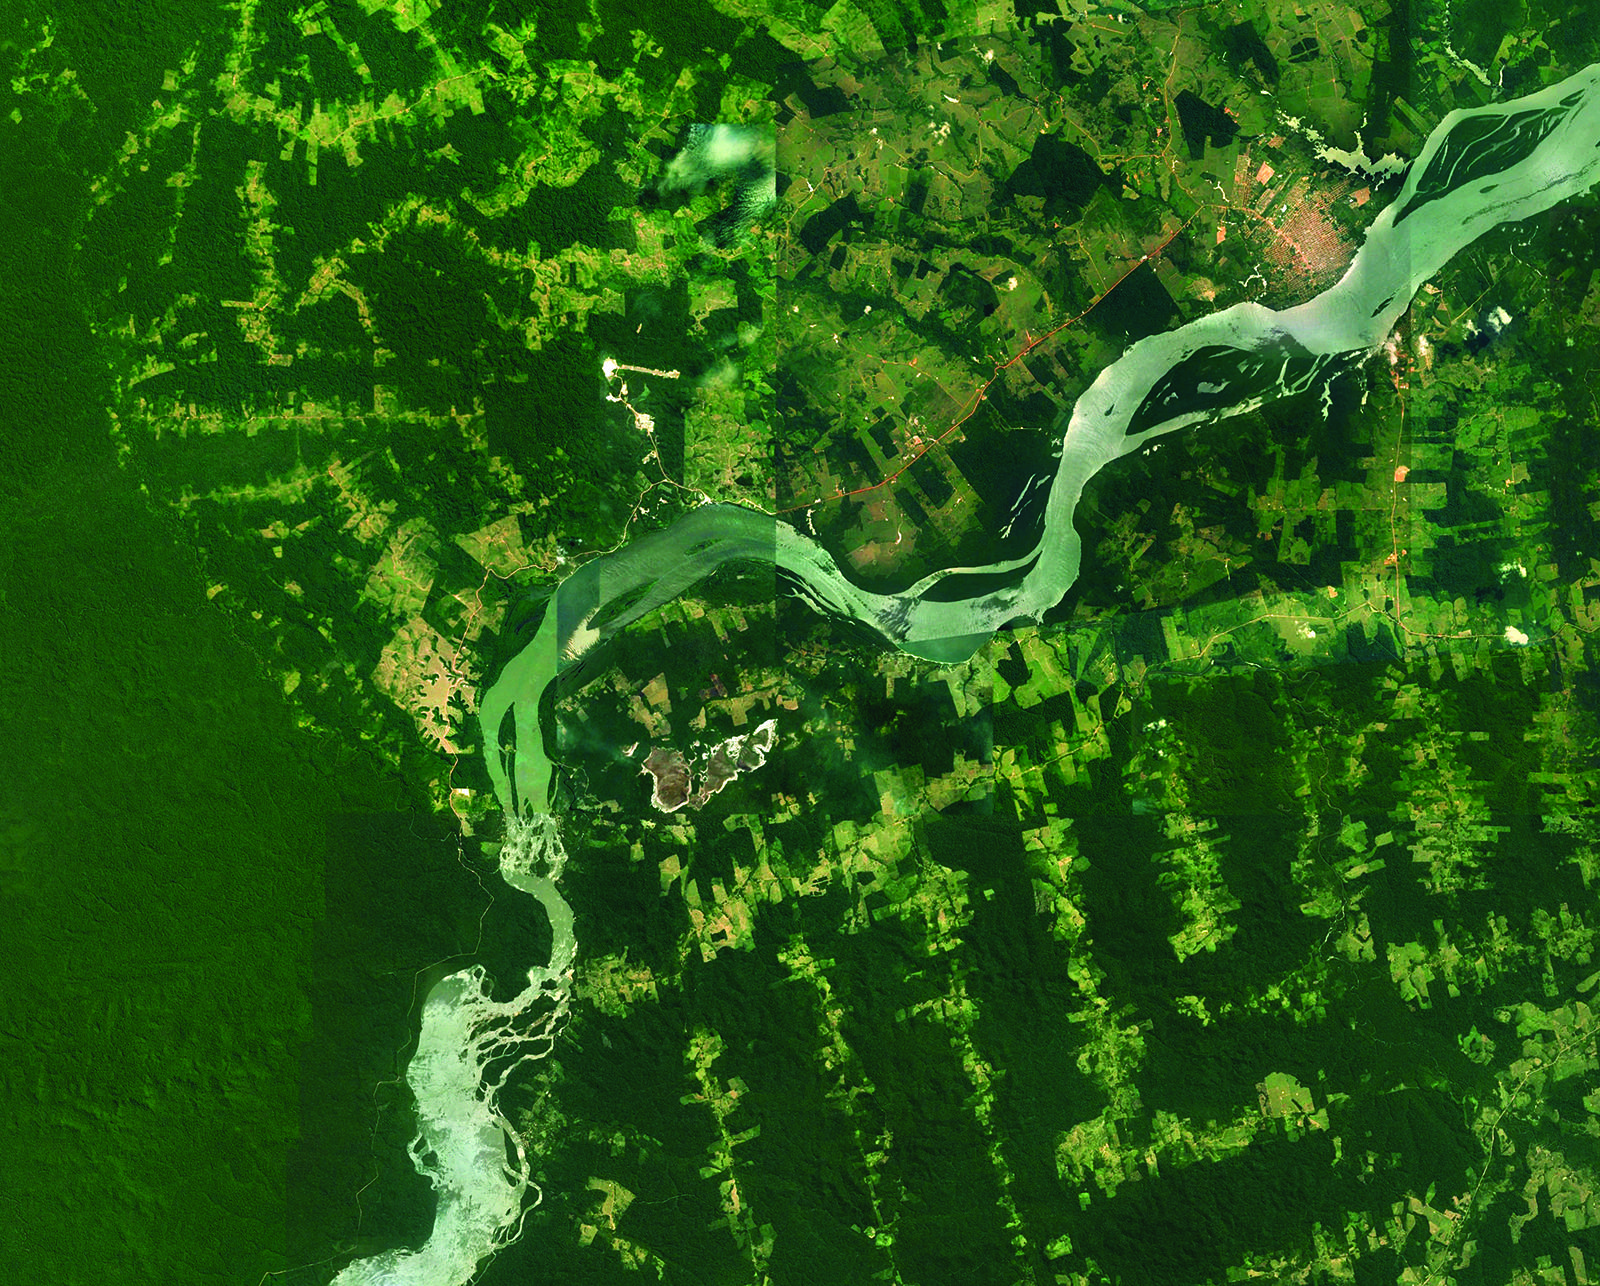 Satellite image of the Tapajos River